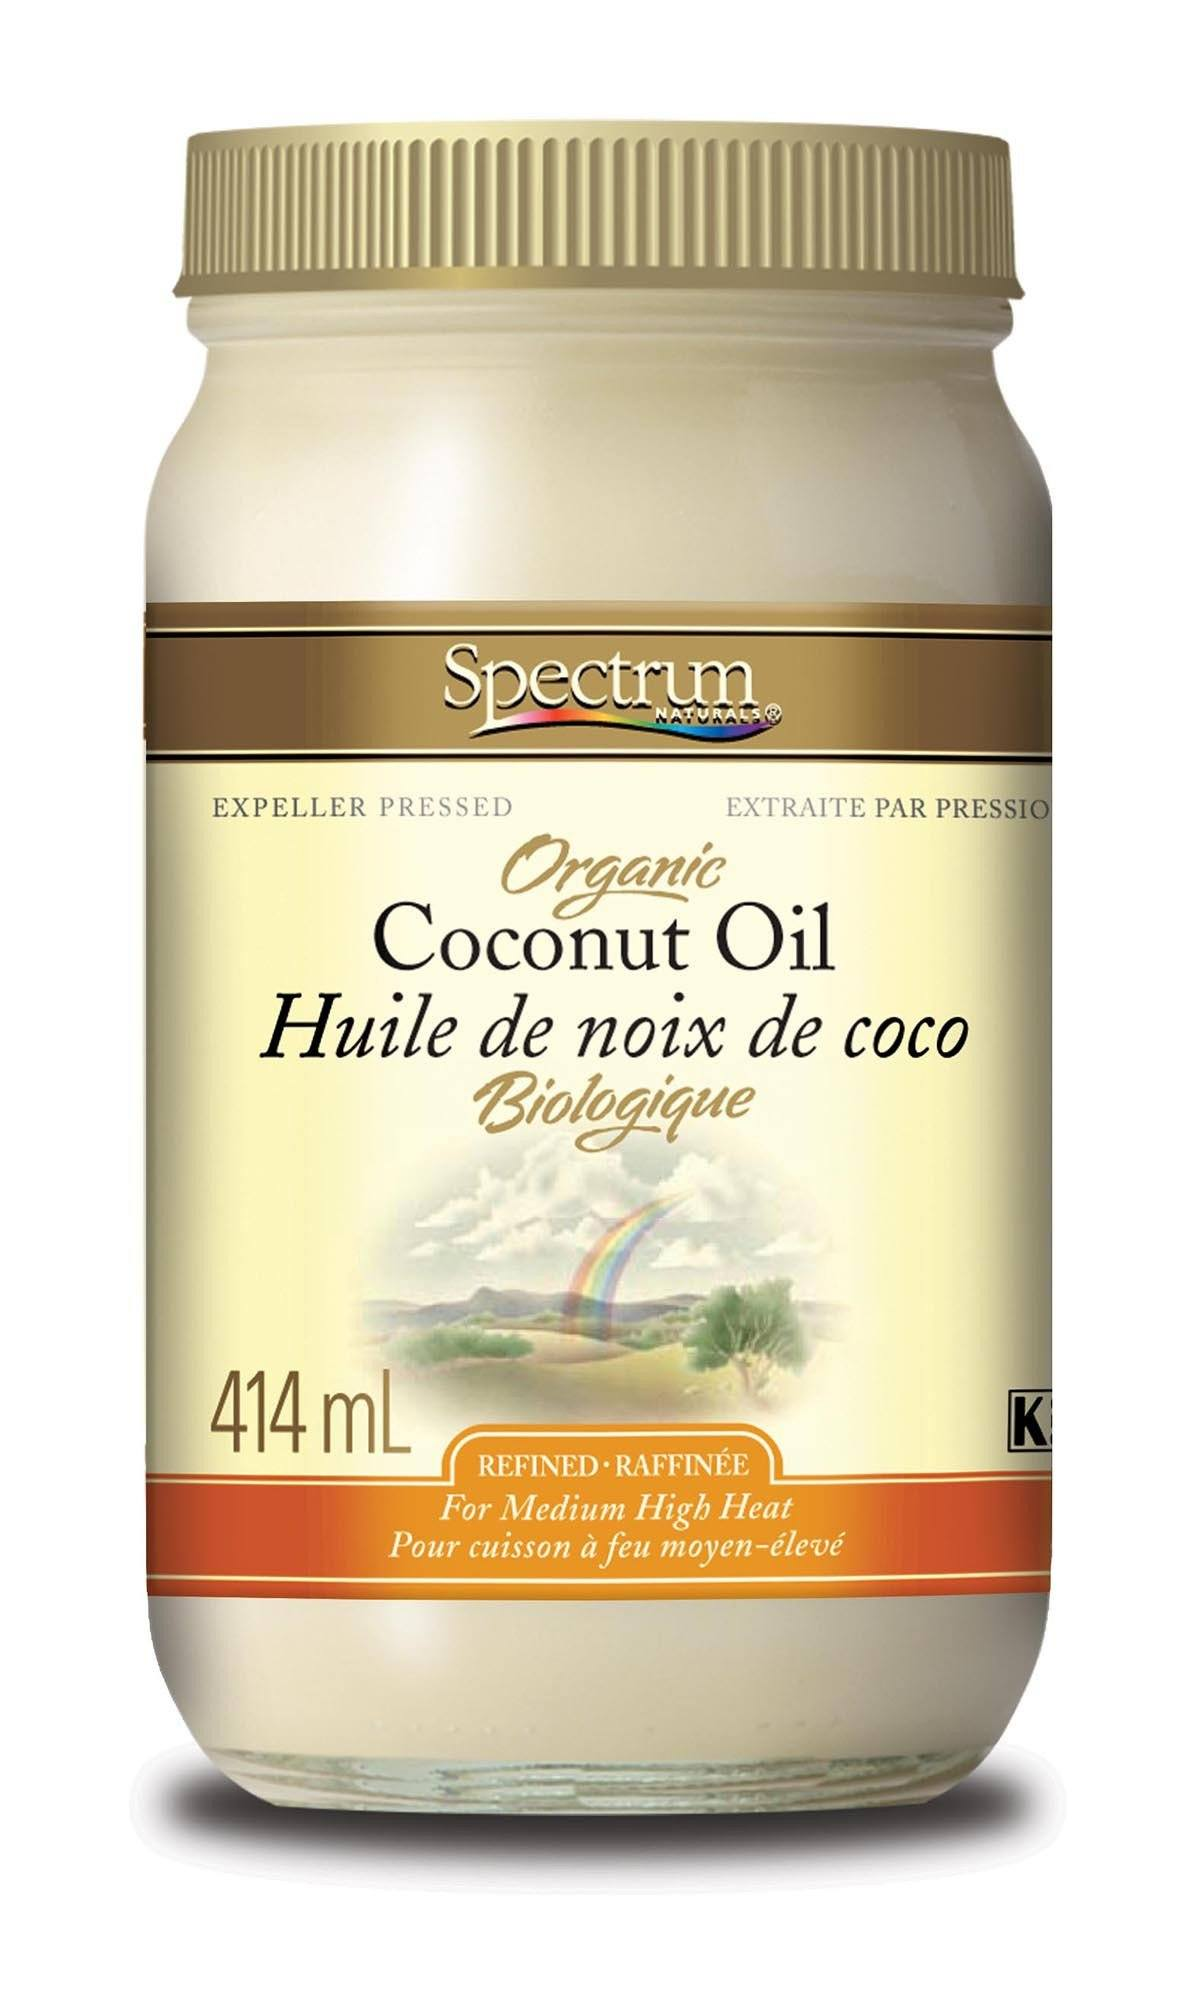 Food & Drink - Spectrum Naturals - Organic Coconut Oil, 414ml